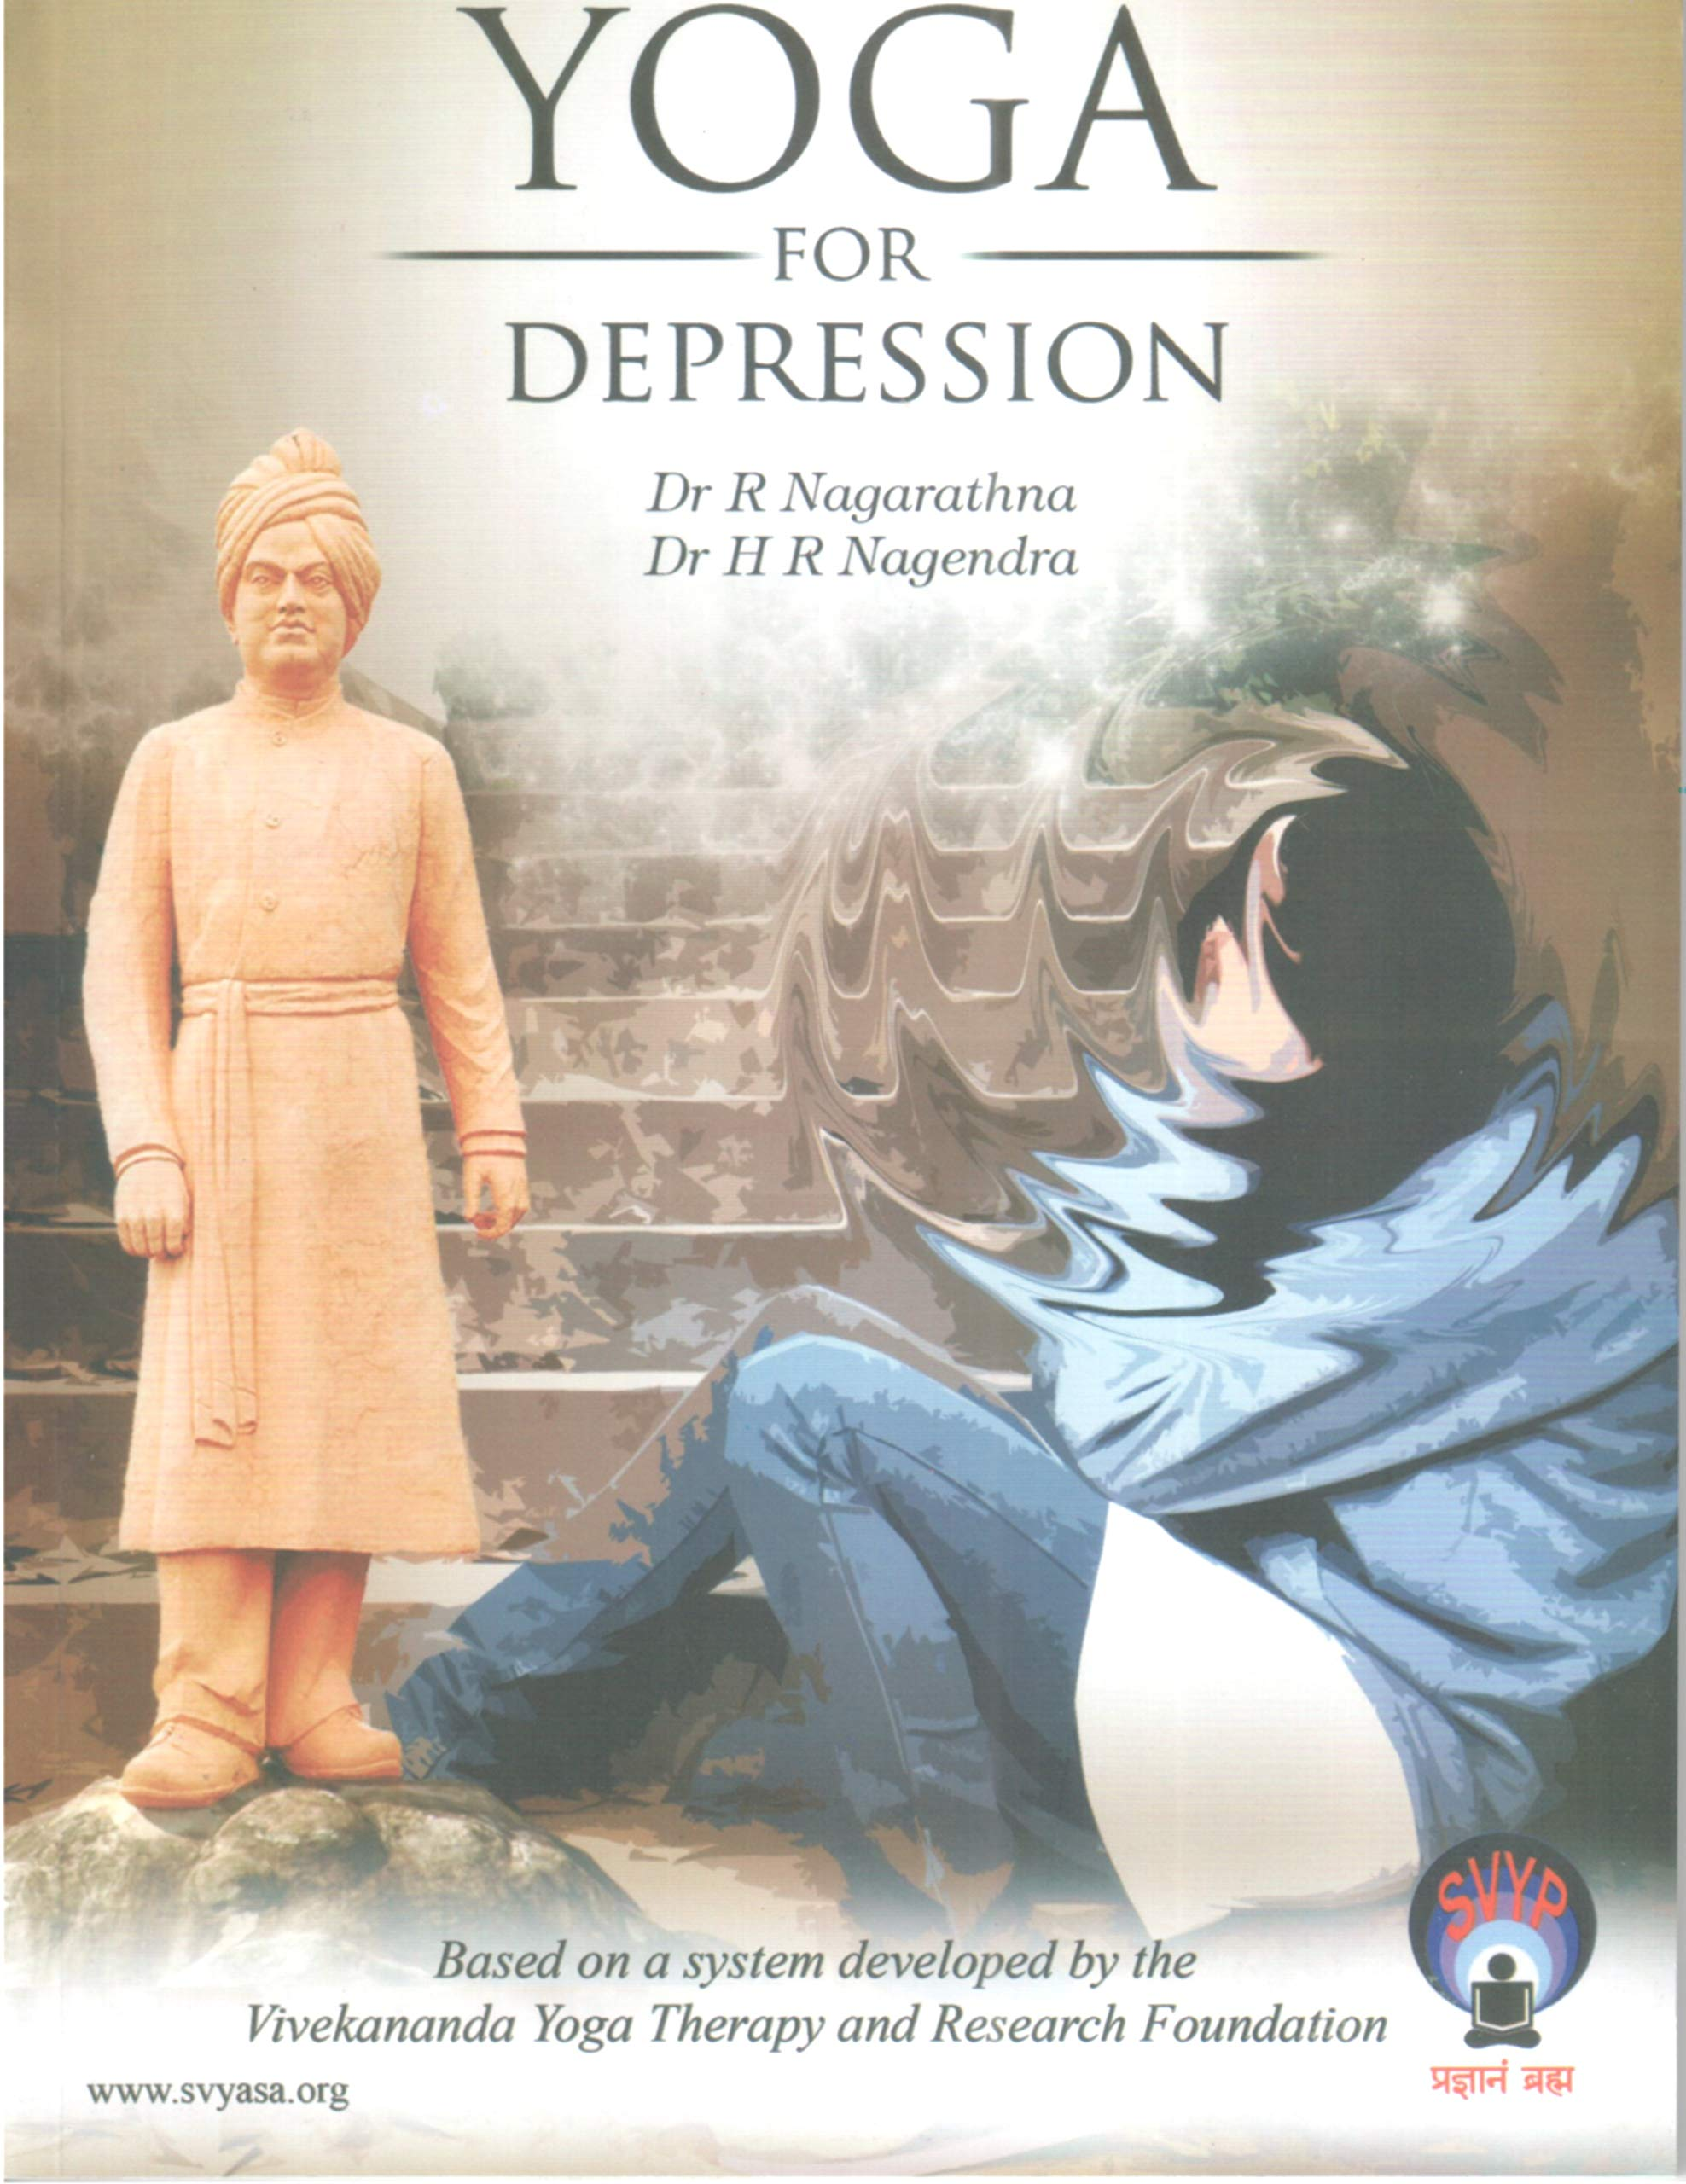 Buy Yoga For Depression International Edition Book Online At Low Prices In India Yoga For Depression International Edition Reviews Ratings Amazon In